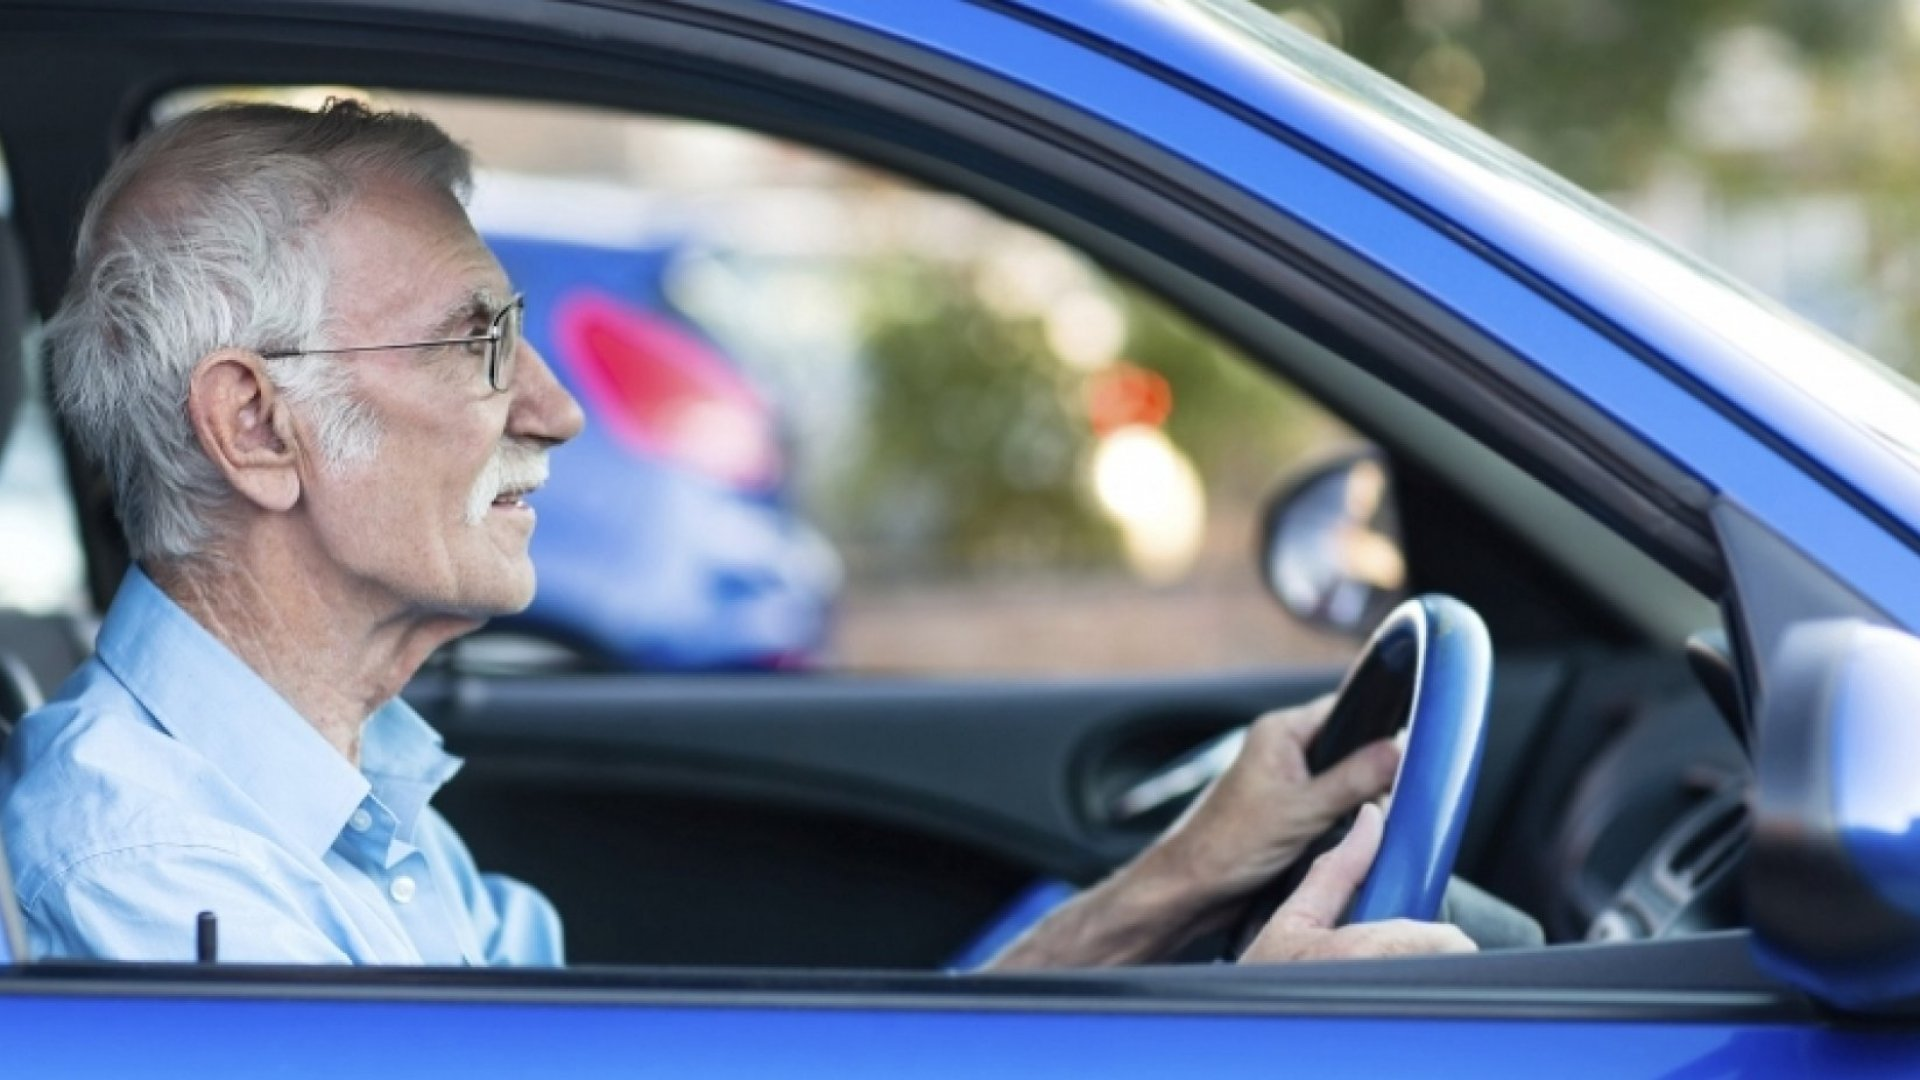 Boomers Are Embracing the Gig Economy